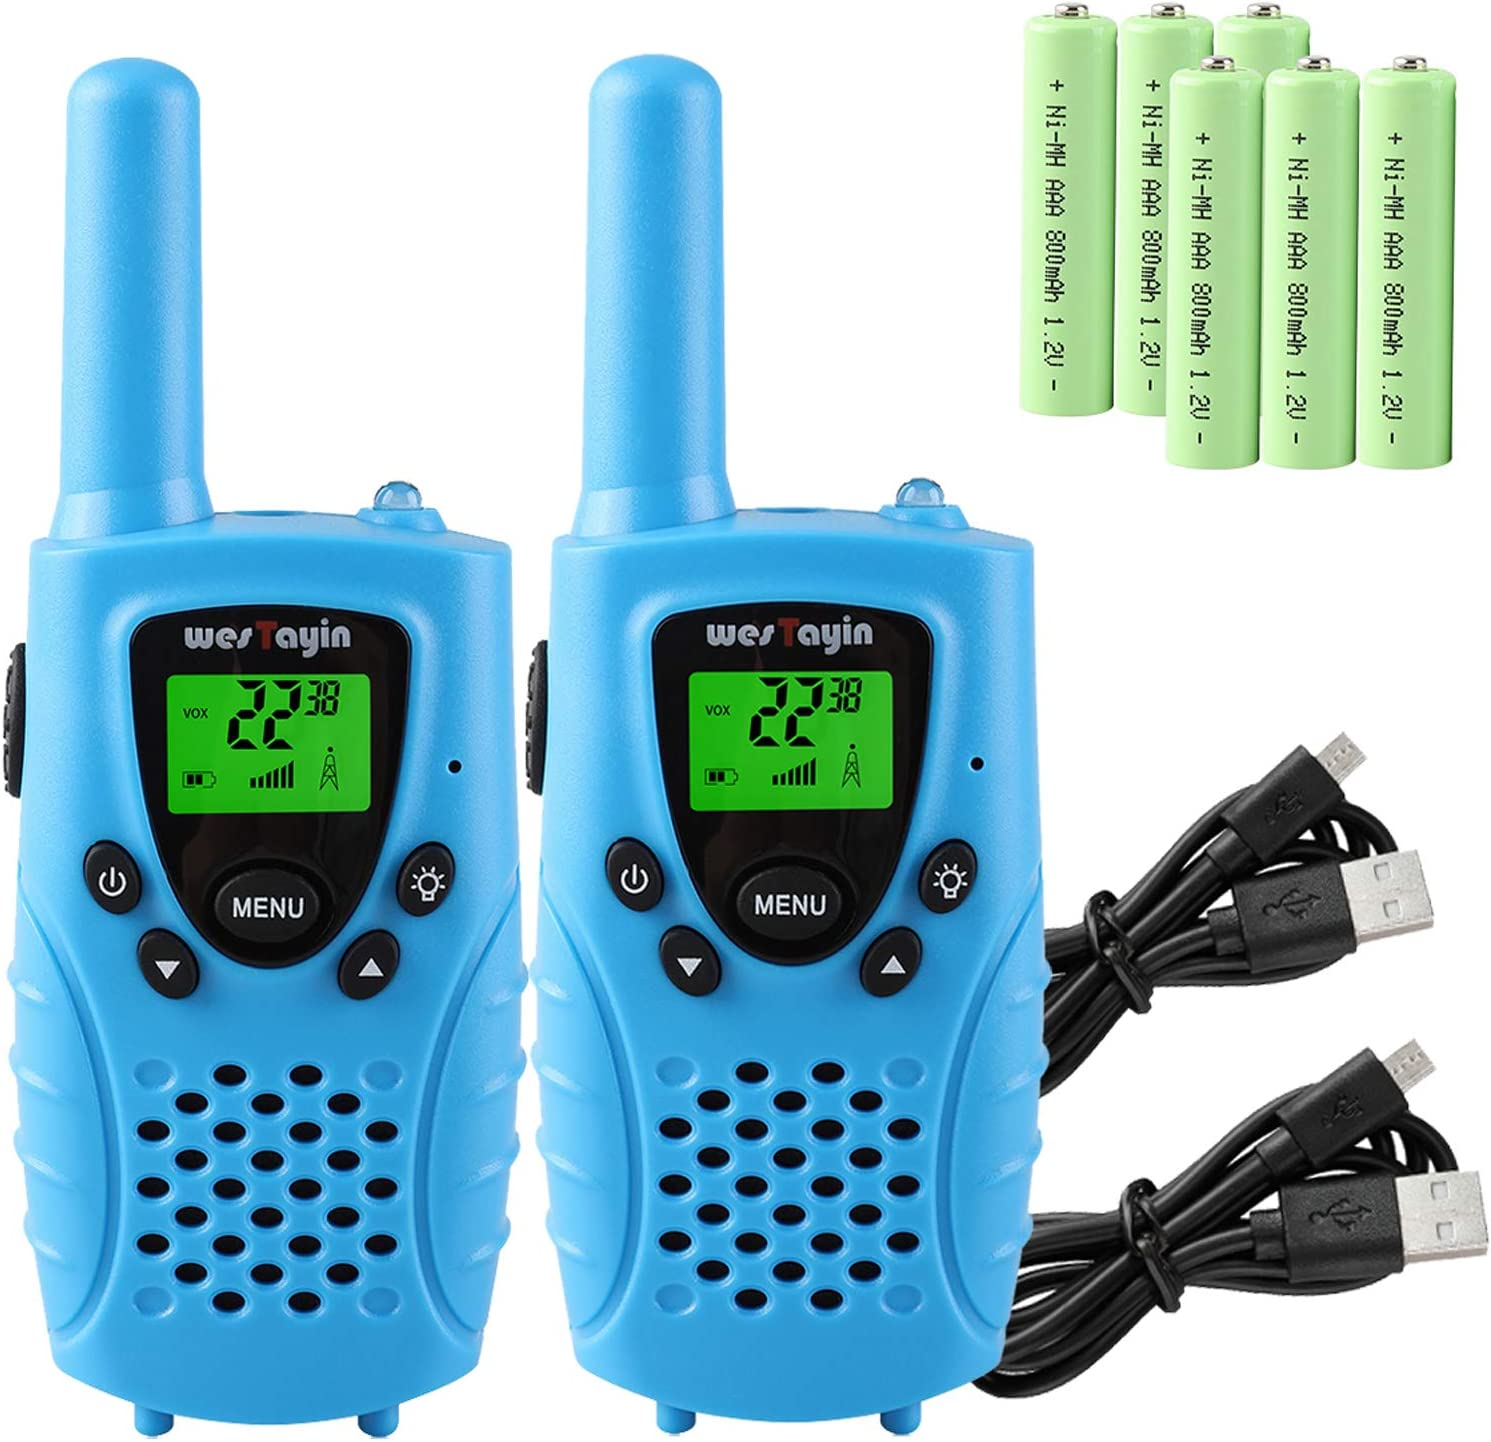 3 Pack Rechargeable Walkie Talkies with NOAA Weather Alert VOX Flashlight 4 Miles Long Range FRS//GMRS Two Way Radio with Charger Batteries Best Kid Toys Gifts Walkie Talkies for Kids